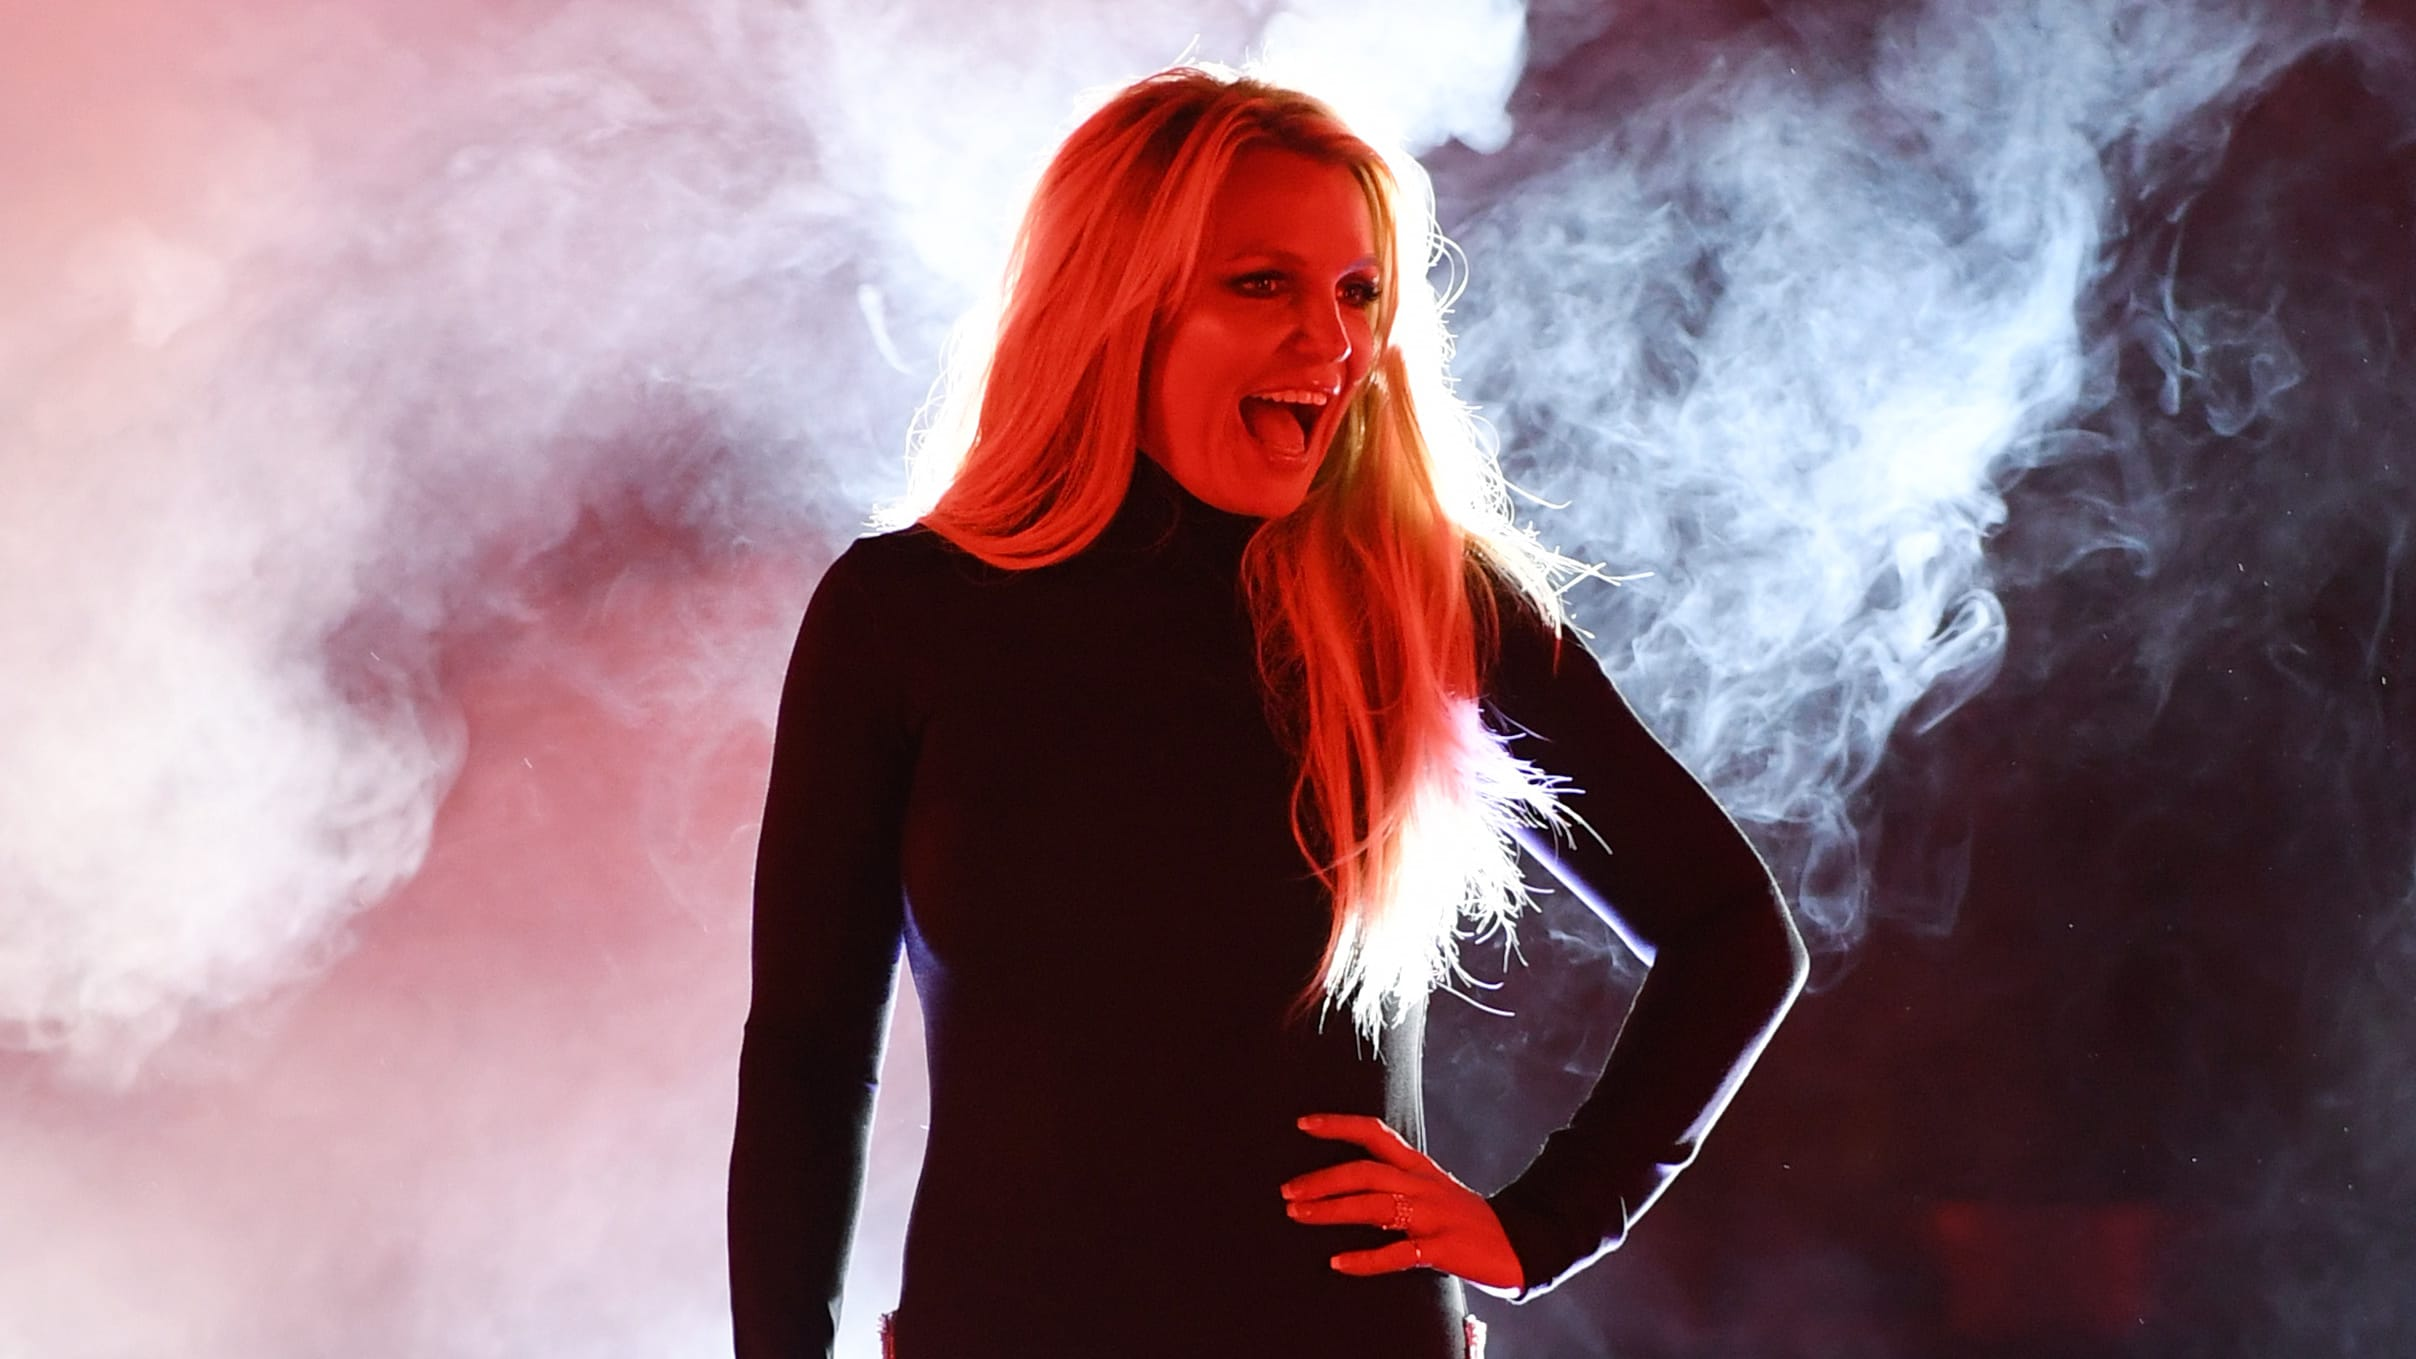 """LAS VEGAS, NEVADA - OCTOBER 18:  Singer Britney Spears attends the announcement of her new residency, """"Britney: Domination"""" at Park MGM on October 18, 2018 in Las Vegas, Nevada. Spears will perform 32 shows at Park Theater at Park MGM starting in February 2019.  (Photo by Ethan Miller/Getty Images)"""